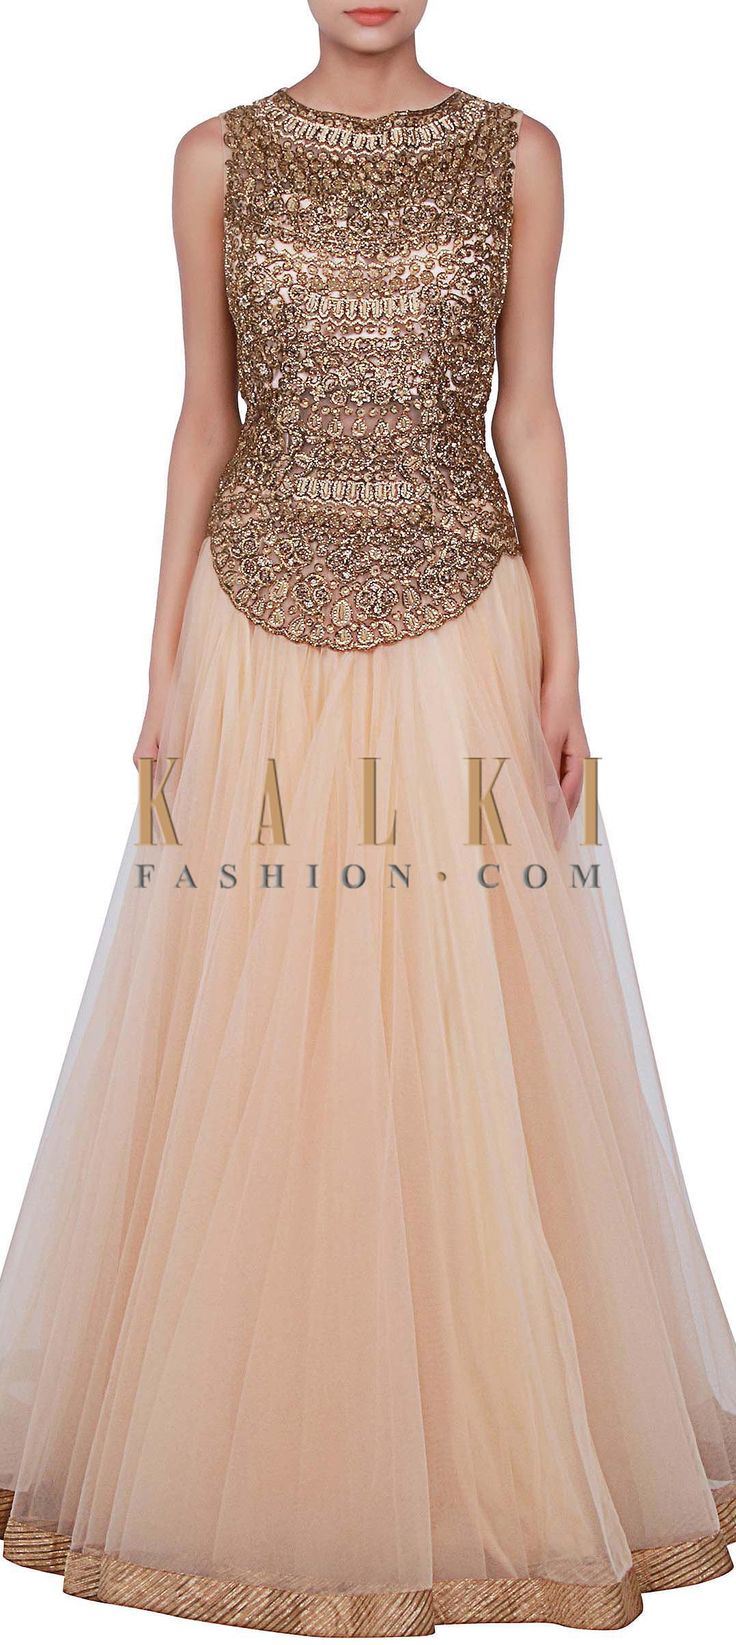 Buy Online from the link below. We ship worldwide (Free Shipping over US$100) http://www.kalkifashion.com/beige-gown-features-with-kundan-embellished-bodice-only-on-kalki.html